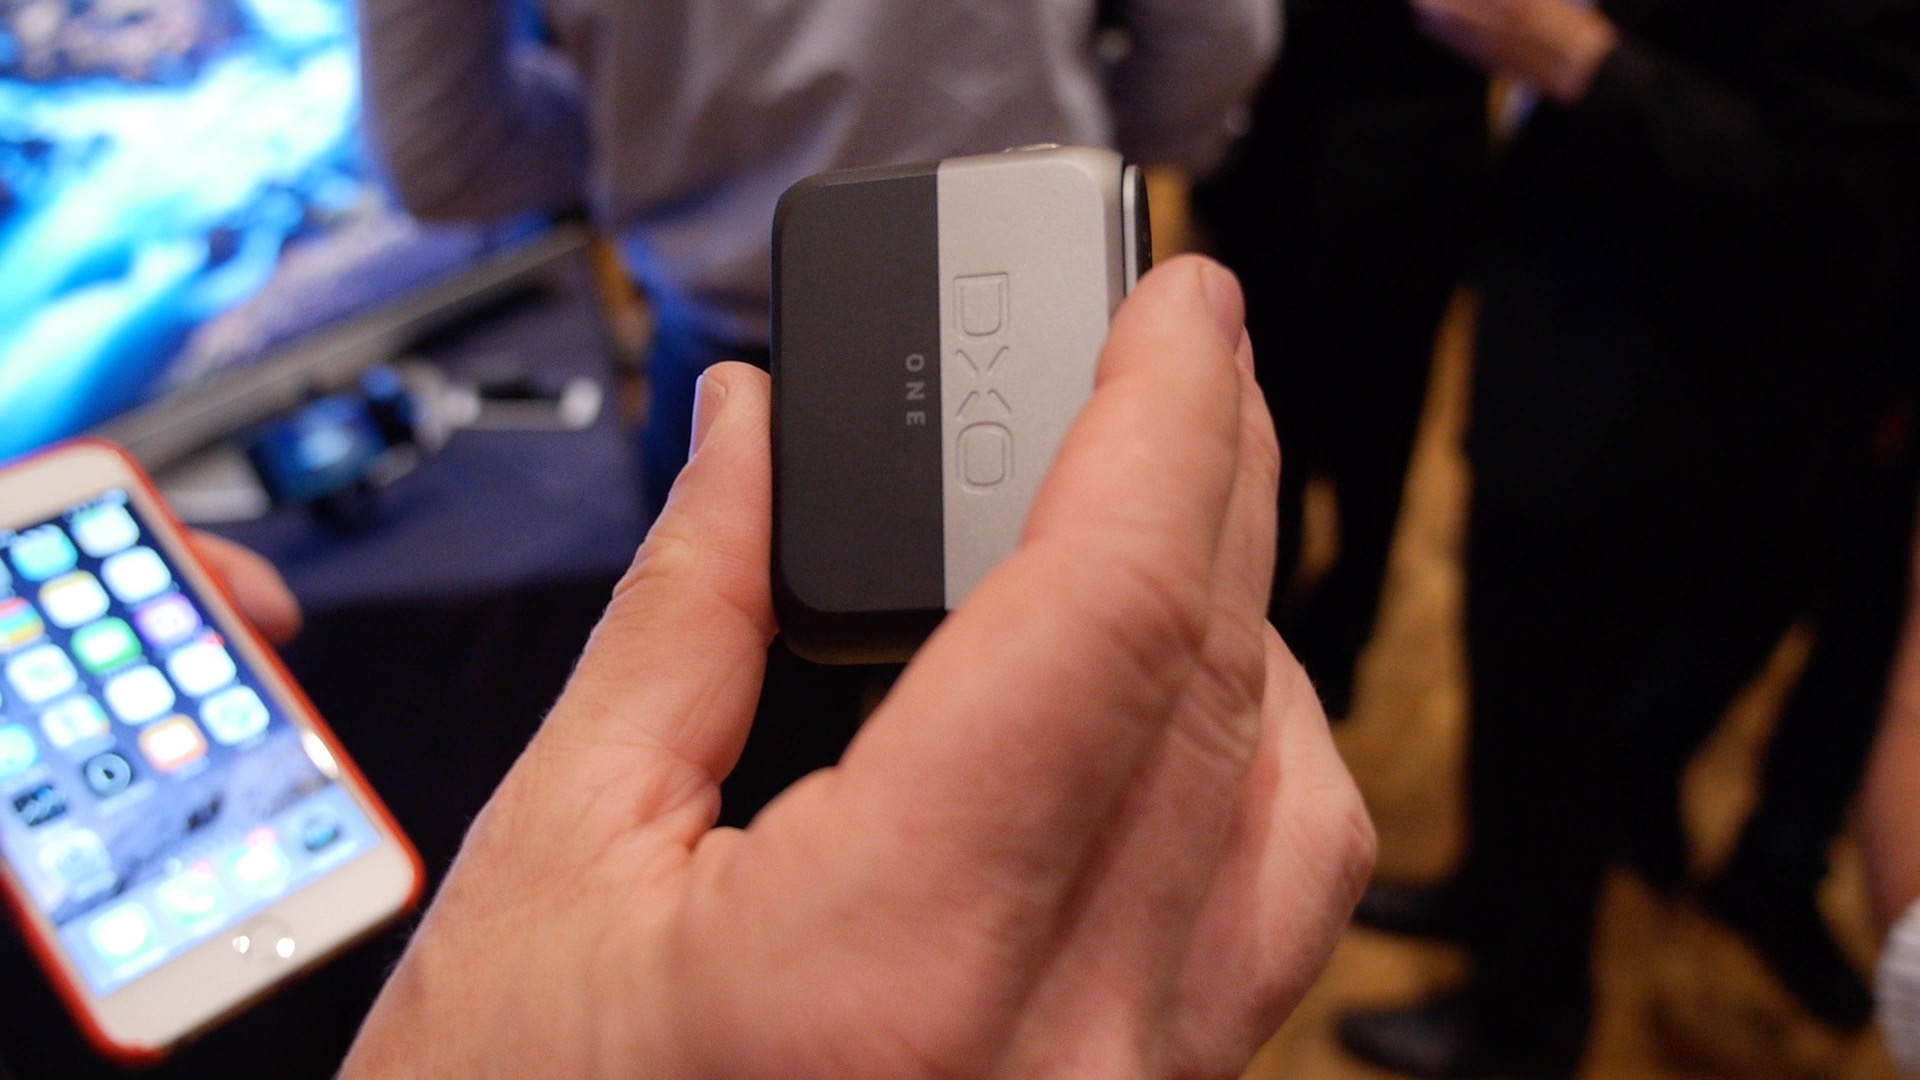 The DxO One is a tiny gadget that attaches to your iPhone—and greatly improves its photographic capabilities.